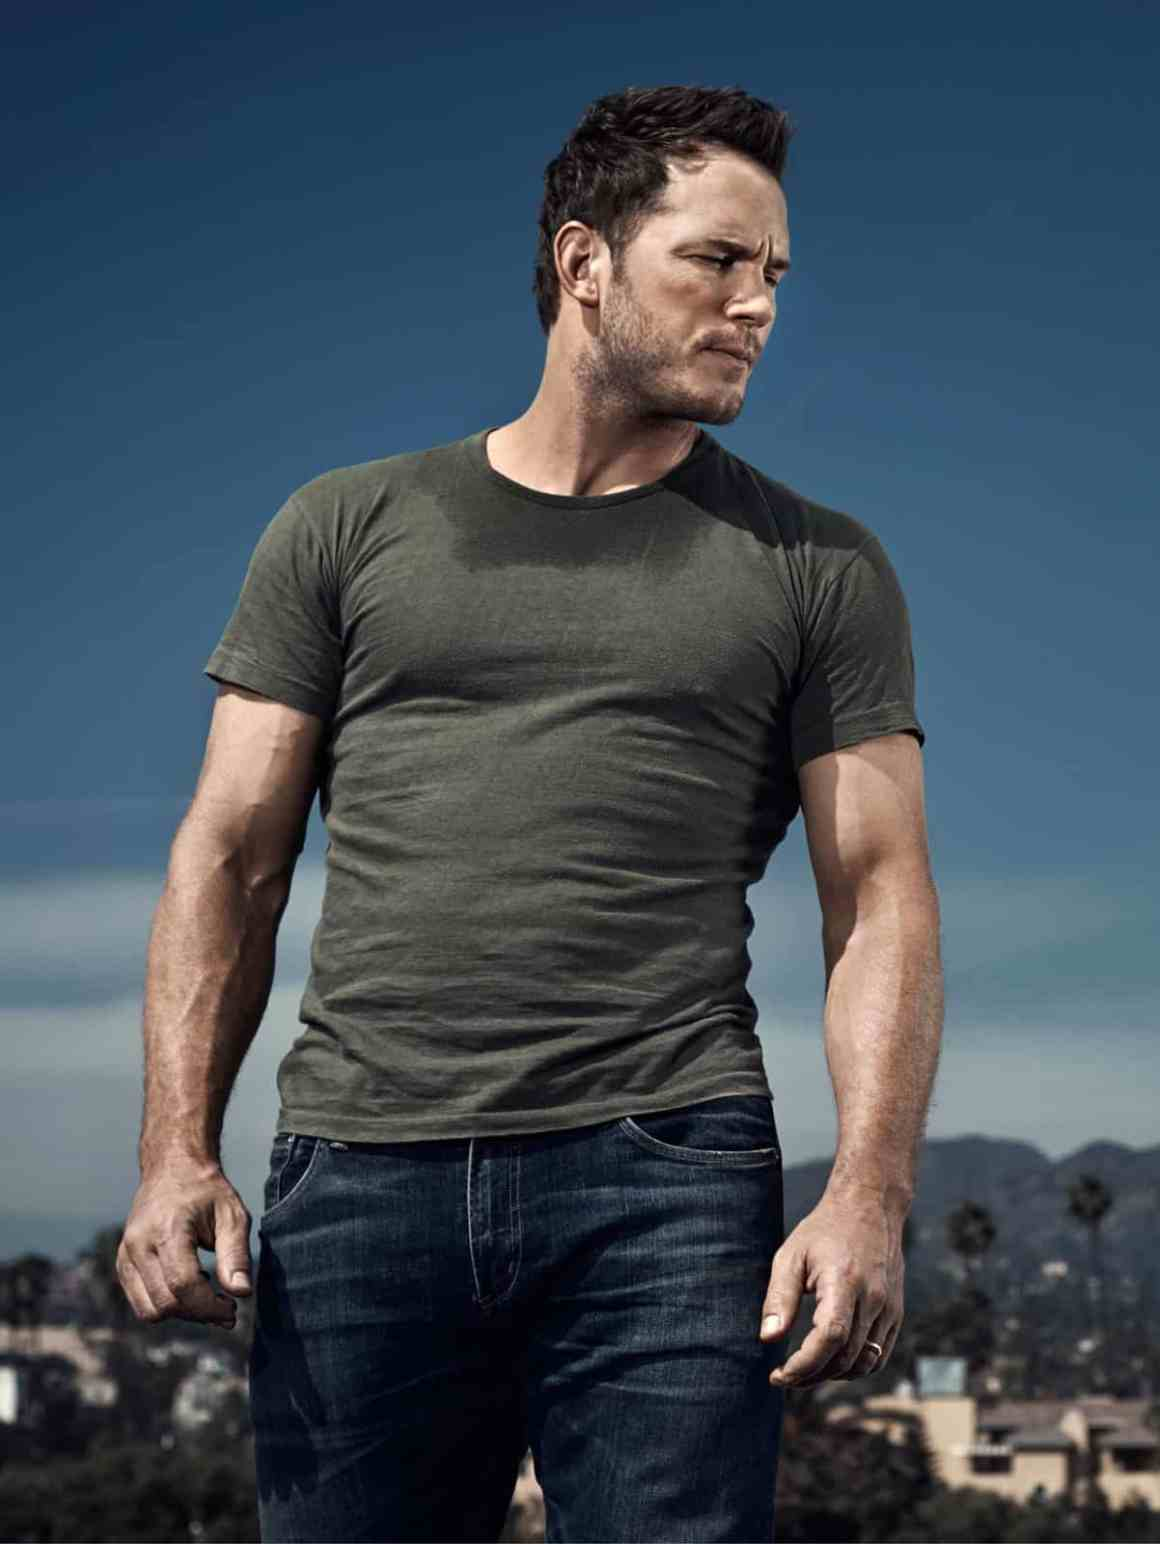 Chris Pratt Men's Health UK